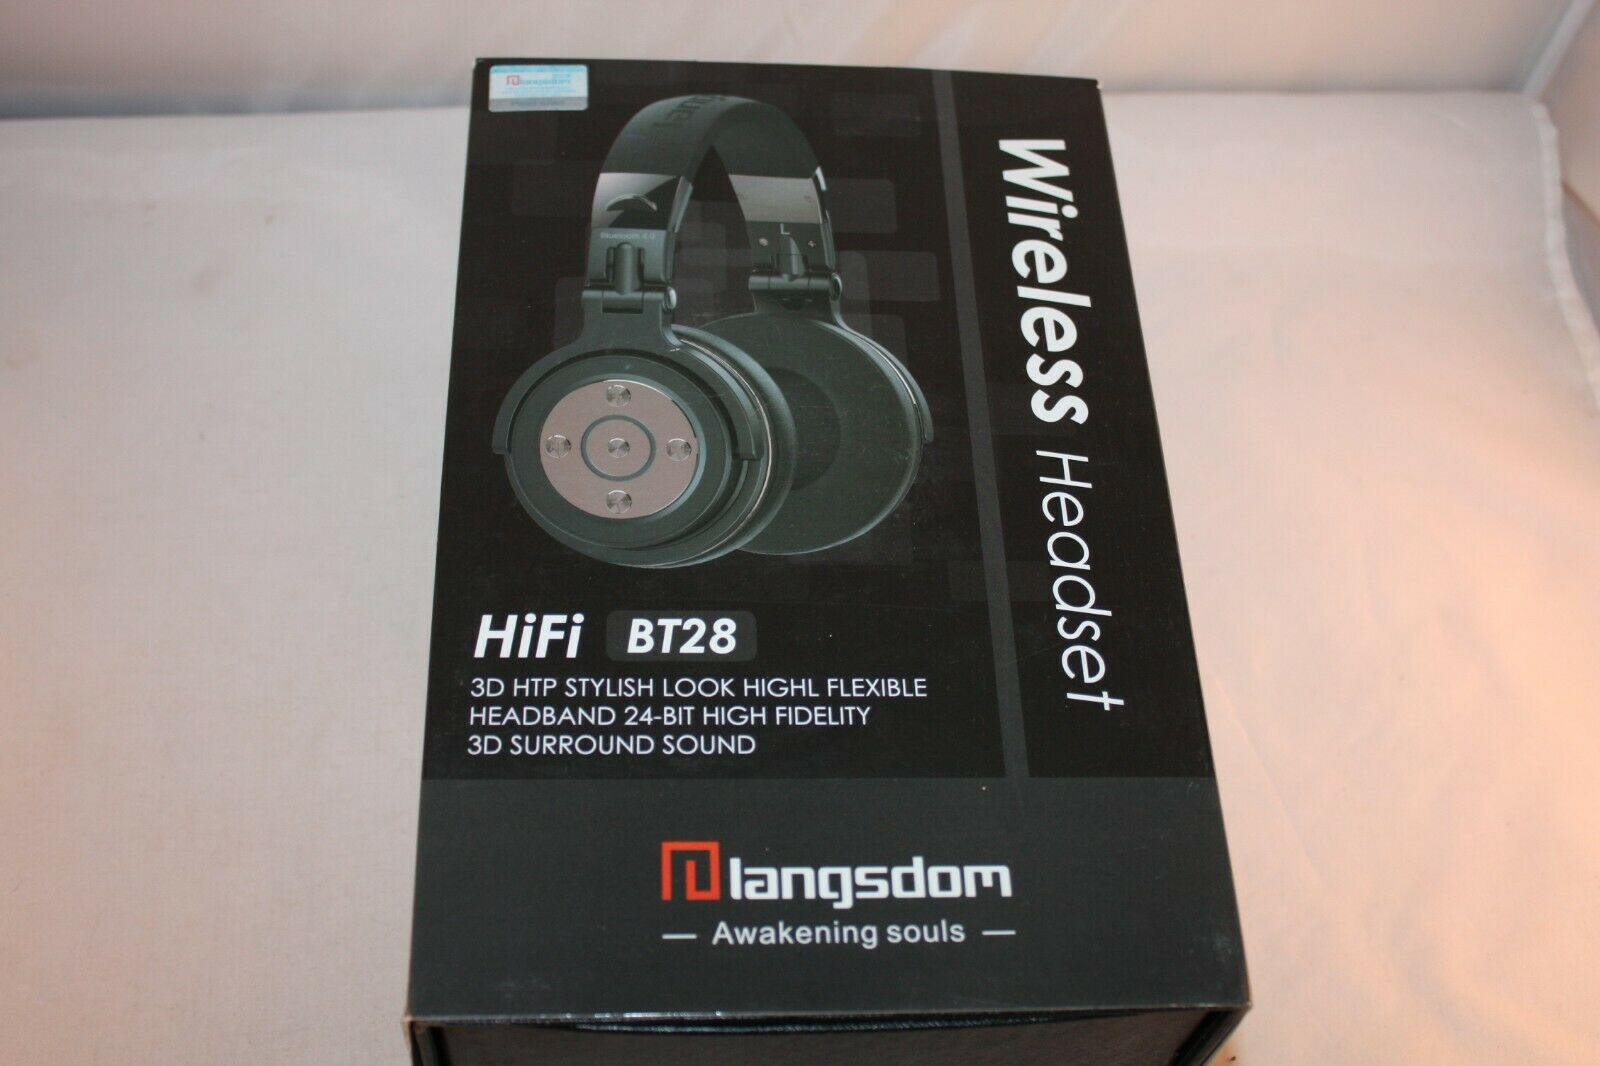 Headphones Wireless Bluetooth Headset Langsdom Bt28 Super Deep Bass Hifi Sound For Sale Online Ebay